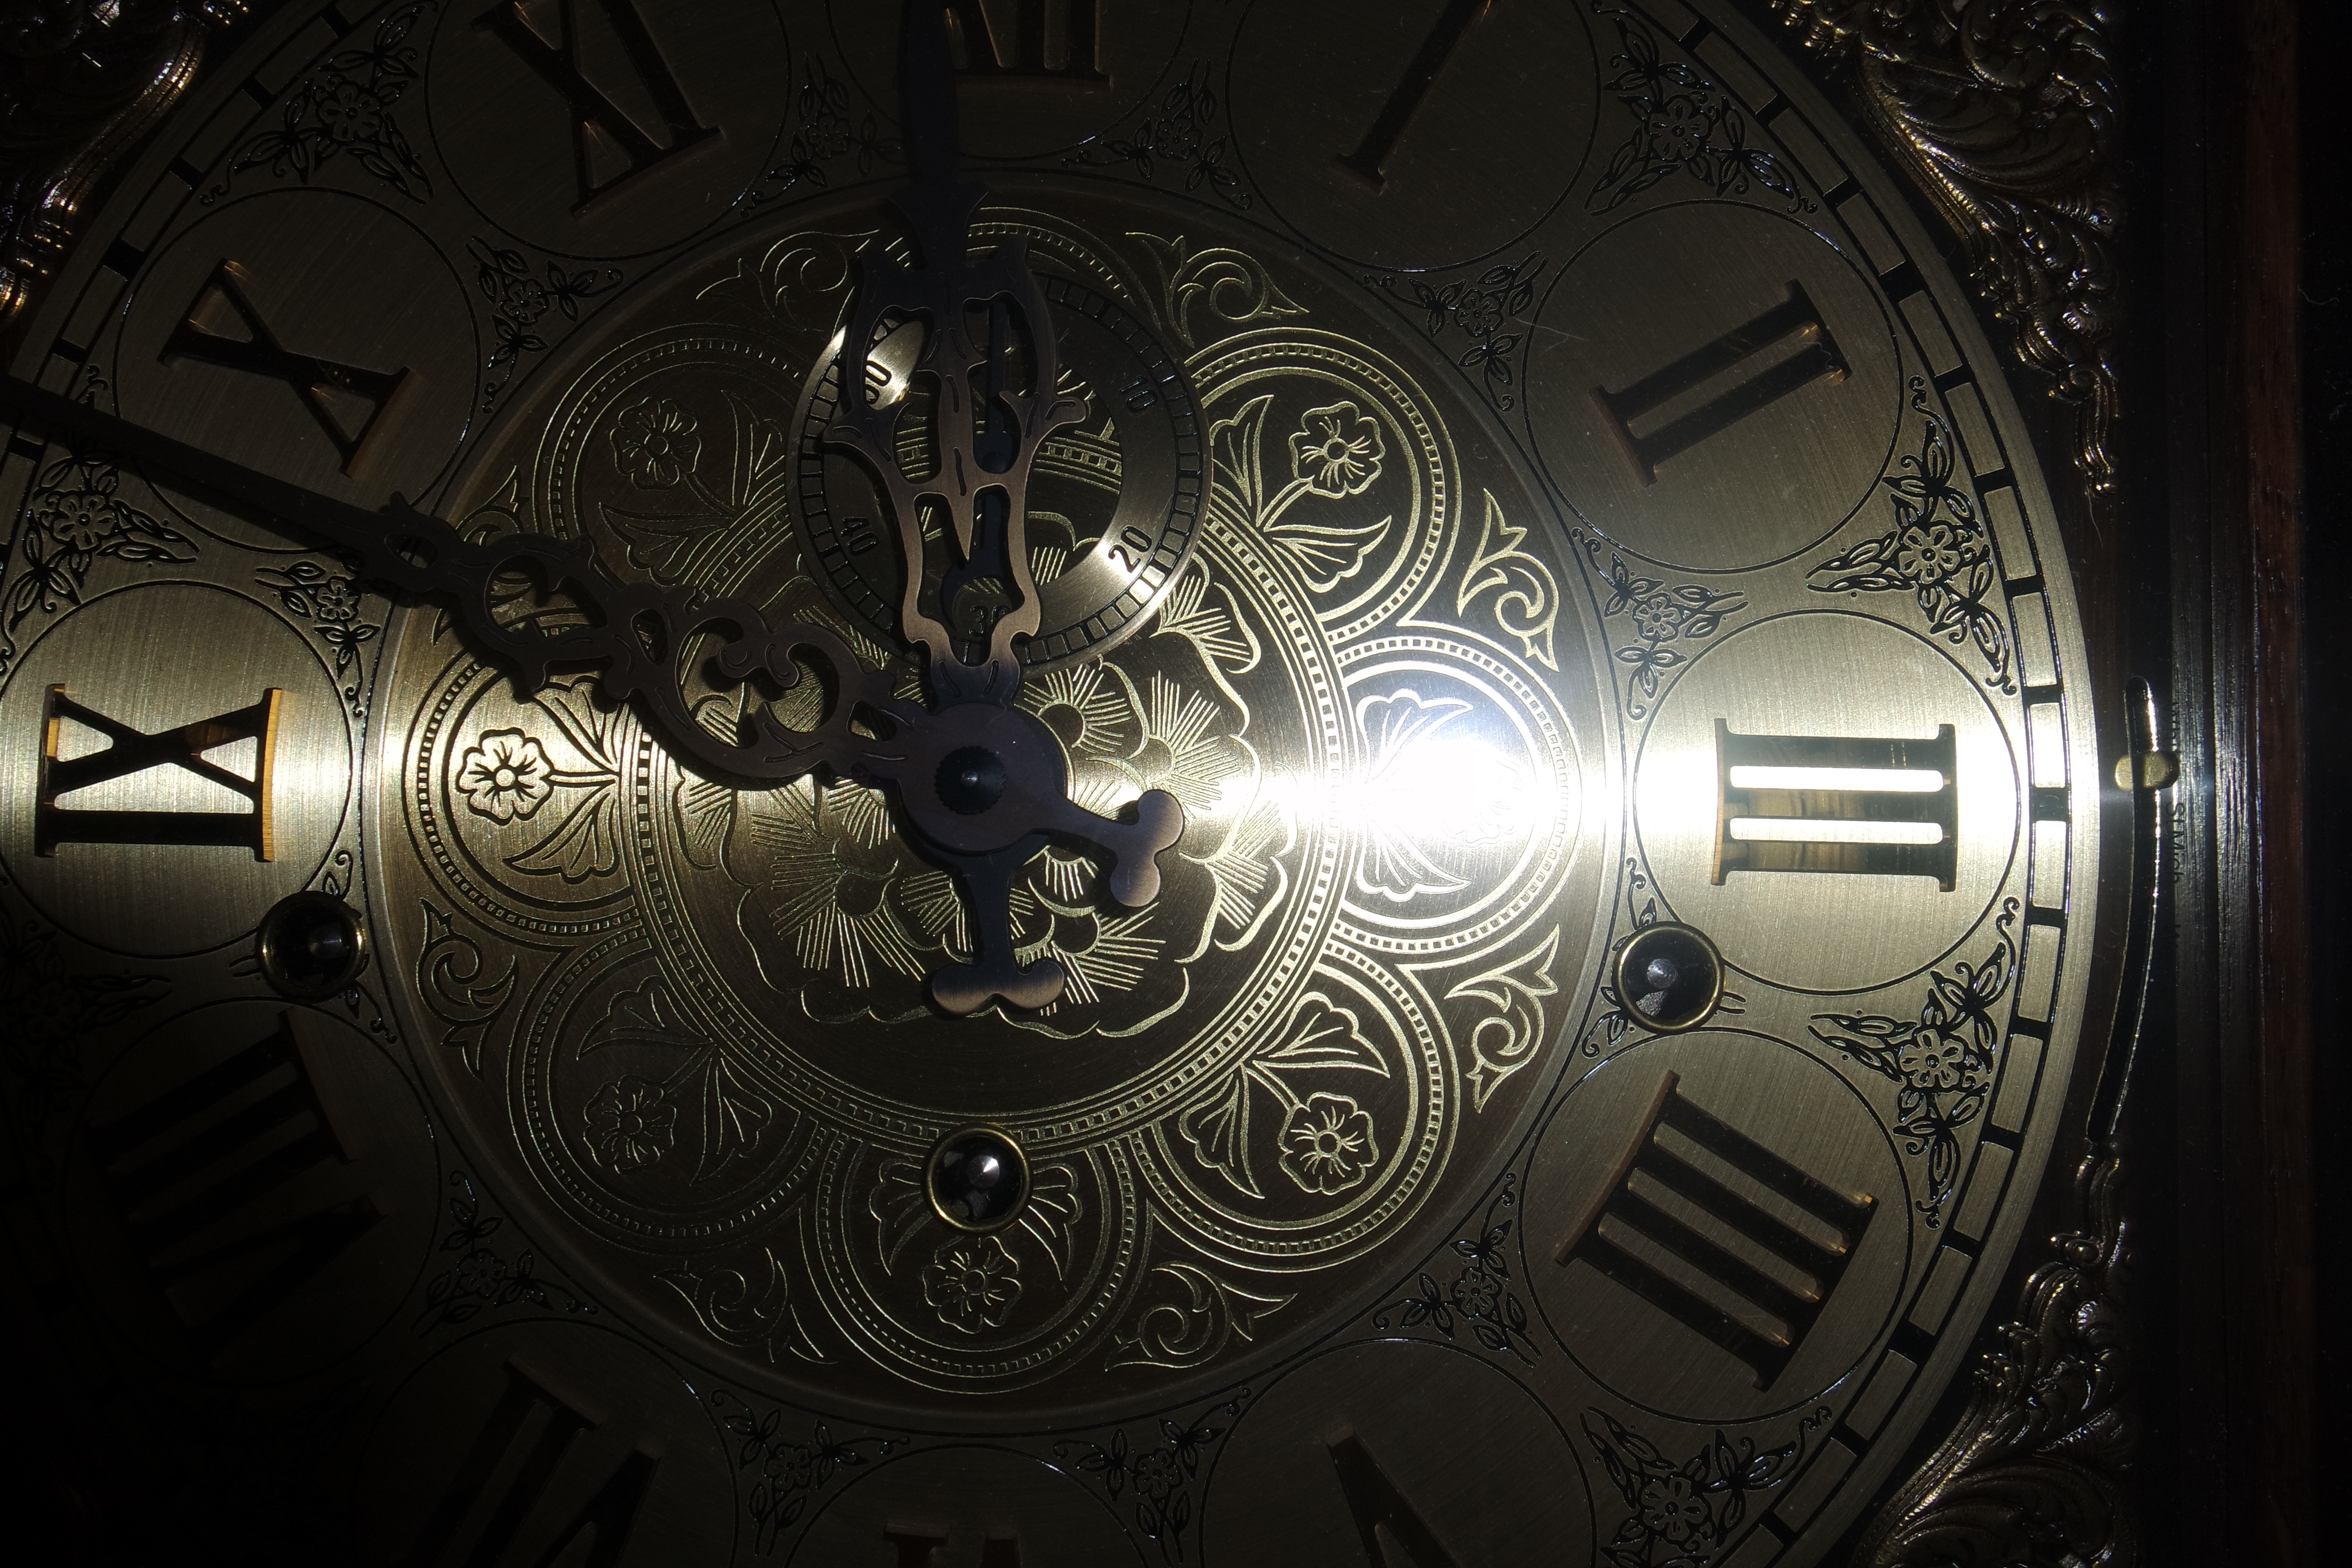 Close-up of the dial of an antique clock